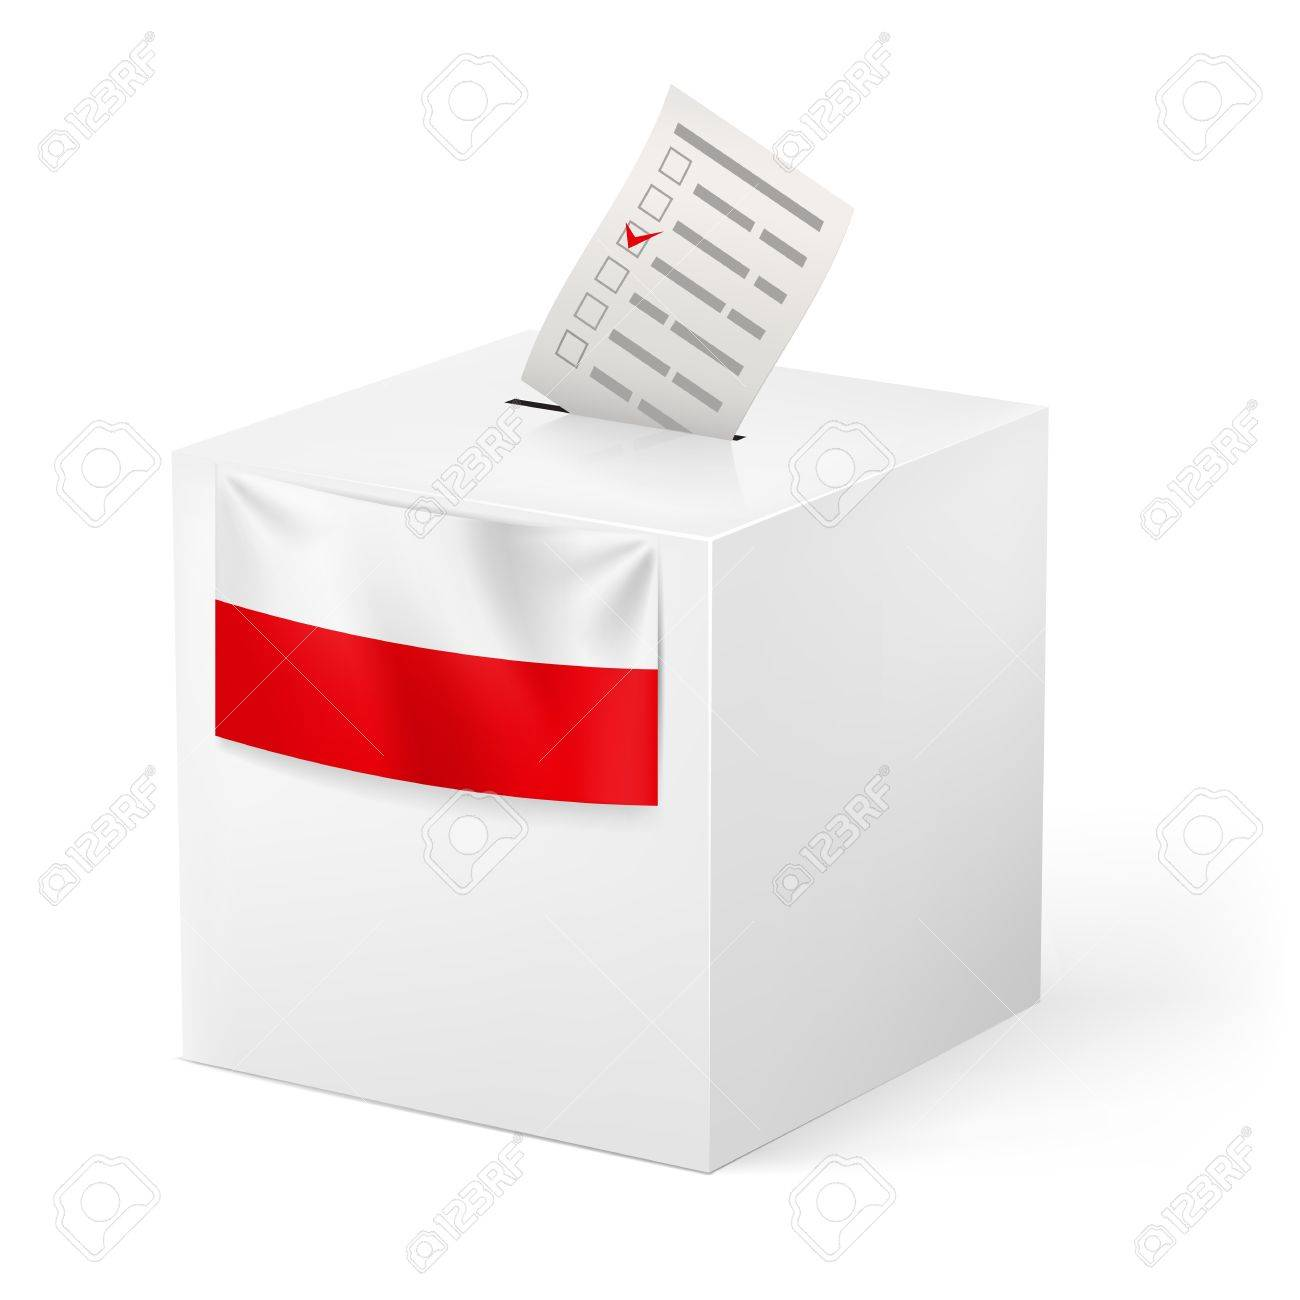 Election in Poland: ballot box with voicing paper isolated on white background. Stock Vector - 21943913